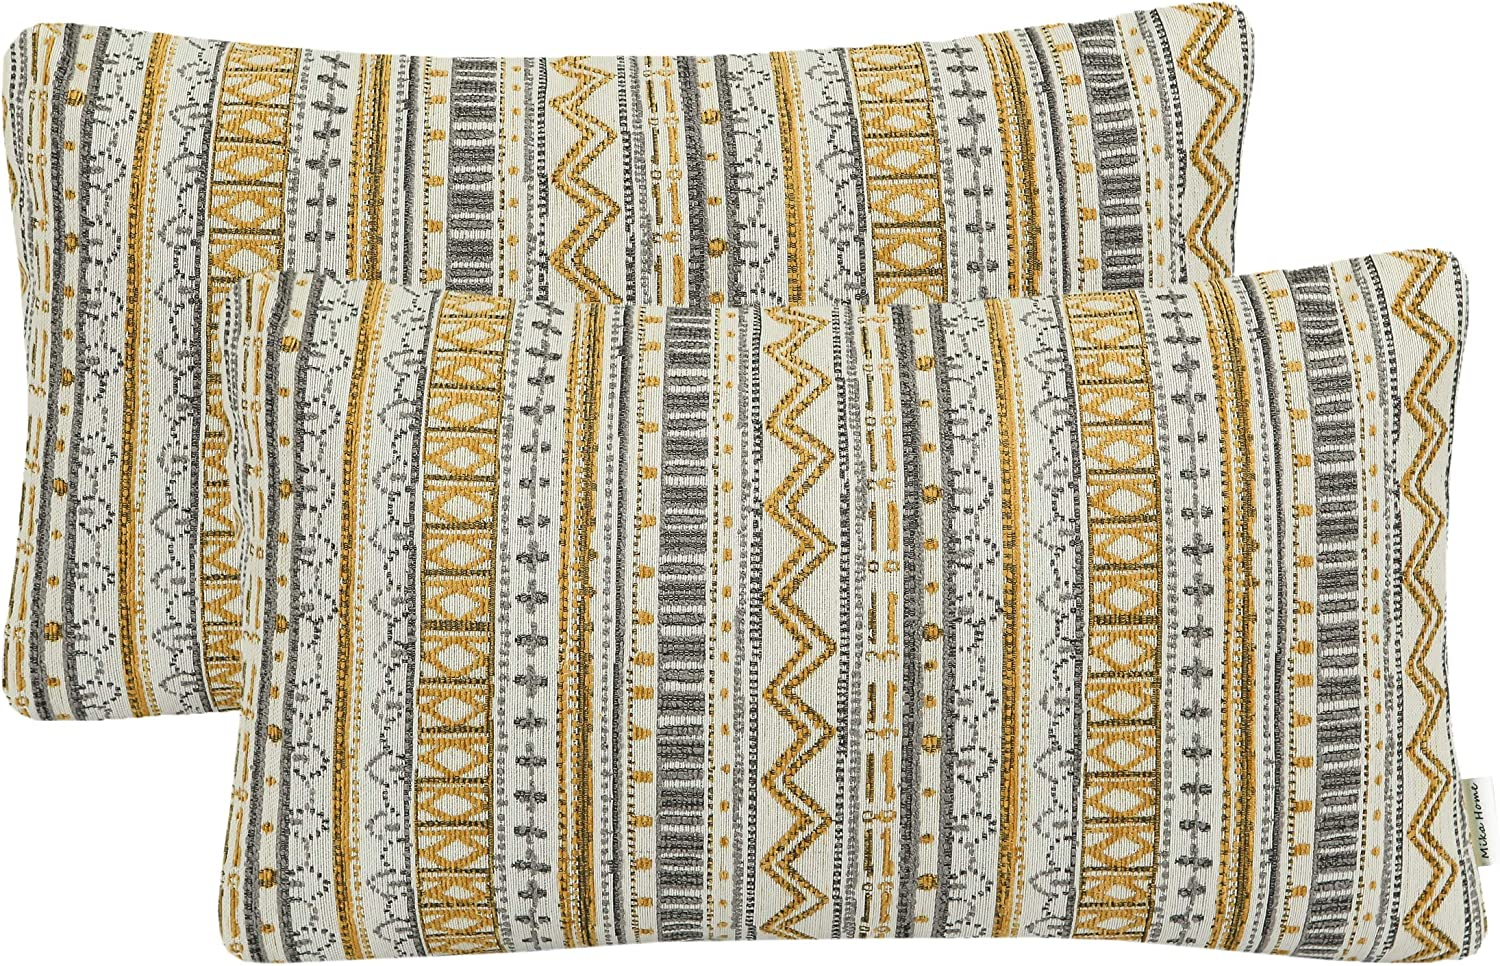 Mika Home Pack of 2 Rectangle Decorative Pillow Cases Throw Pillow Covers for Home Decoration, Bohemian Striped Geometric Pattern, 12x20 Inches, Gold Grey Cream